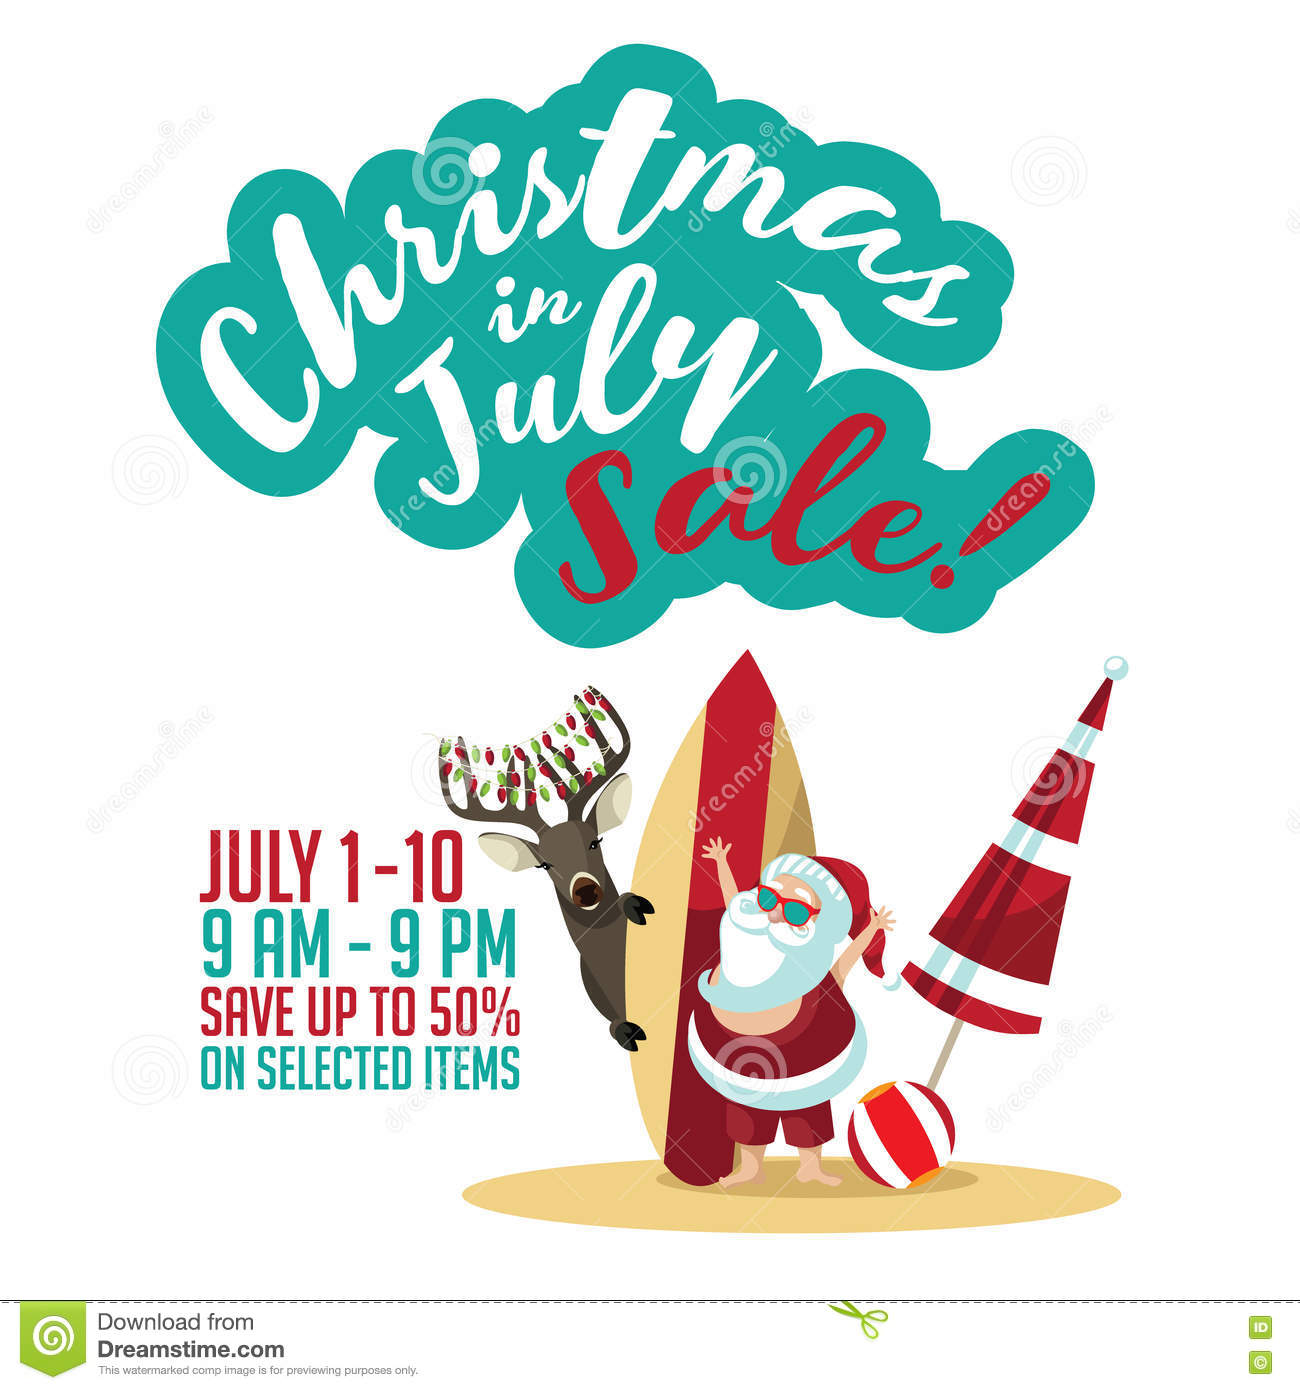 Christmas In July Clipart Free.Christmas In July Sale Marketing Template Stock Vector